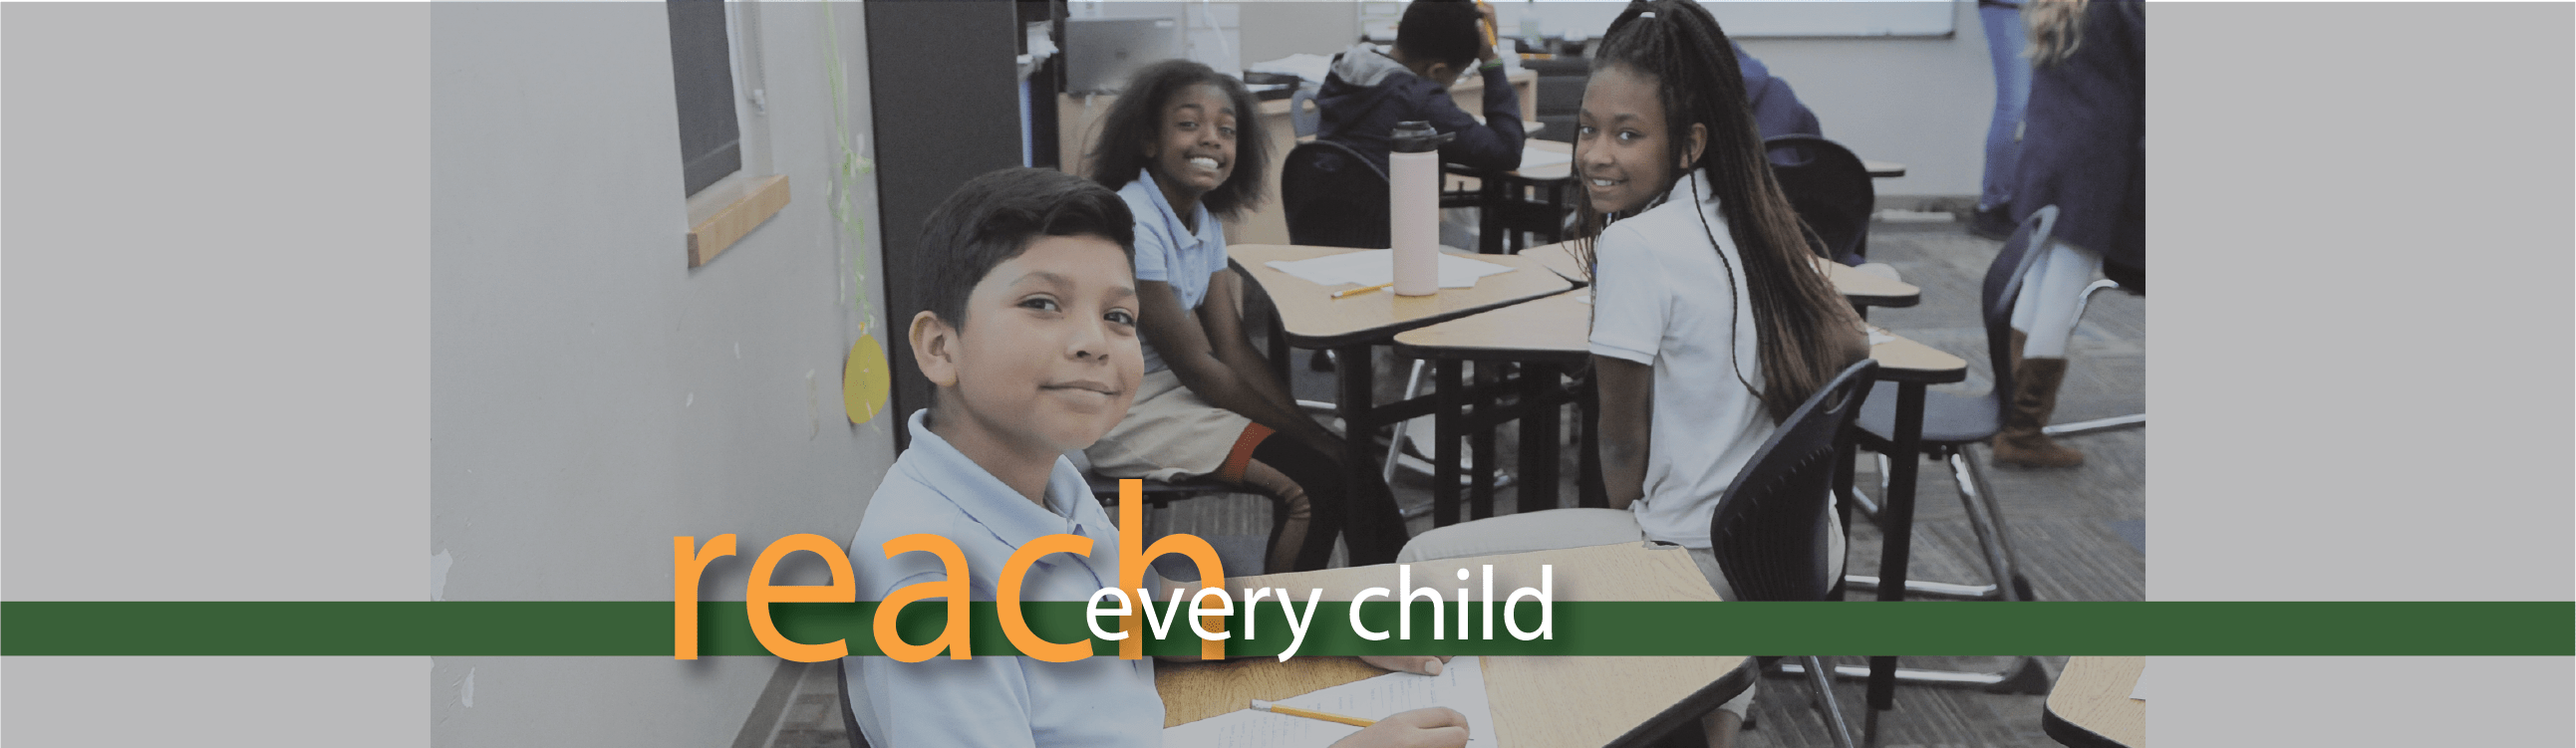 Reach Every Child at High Point Academy